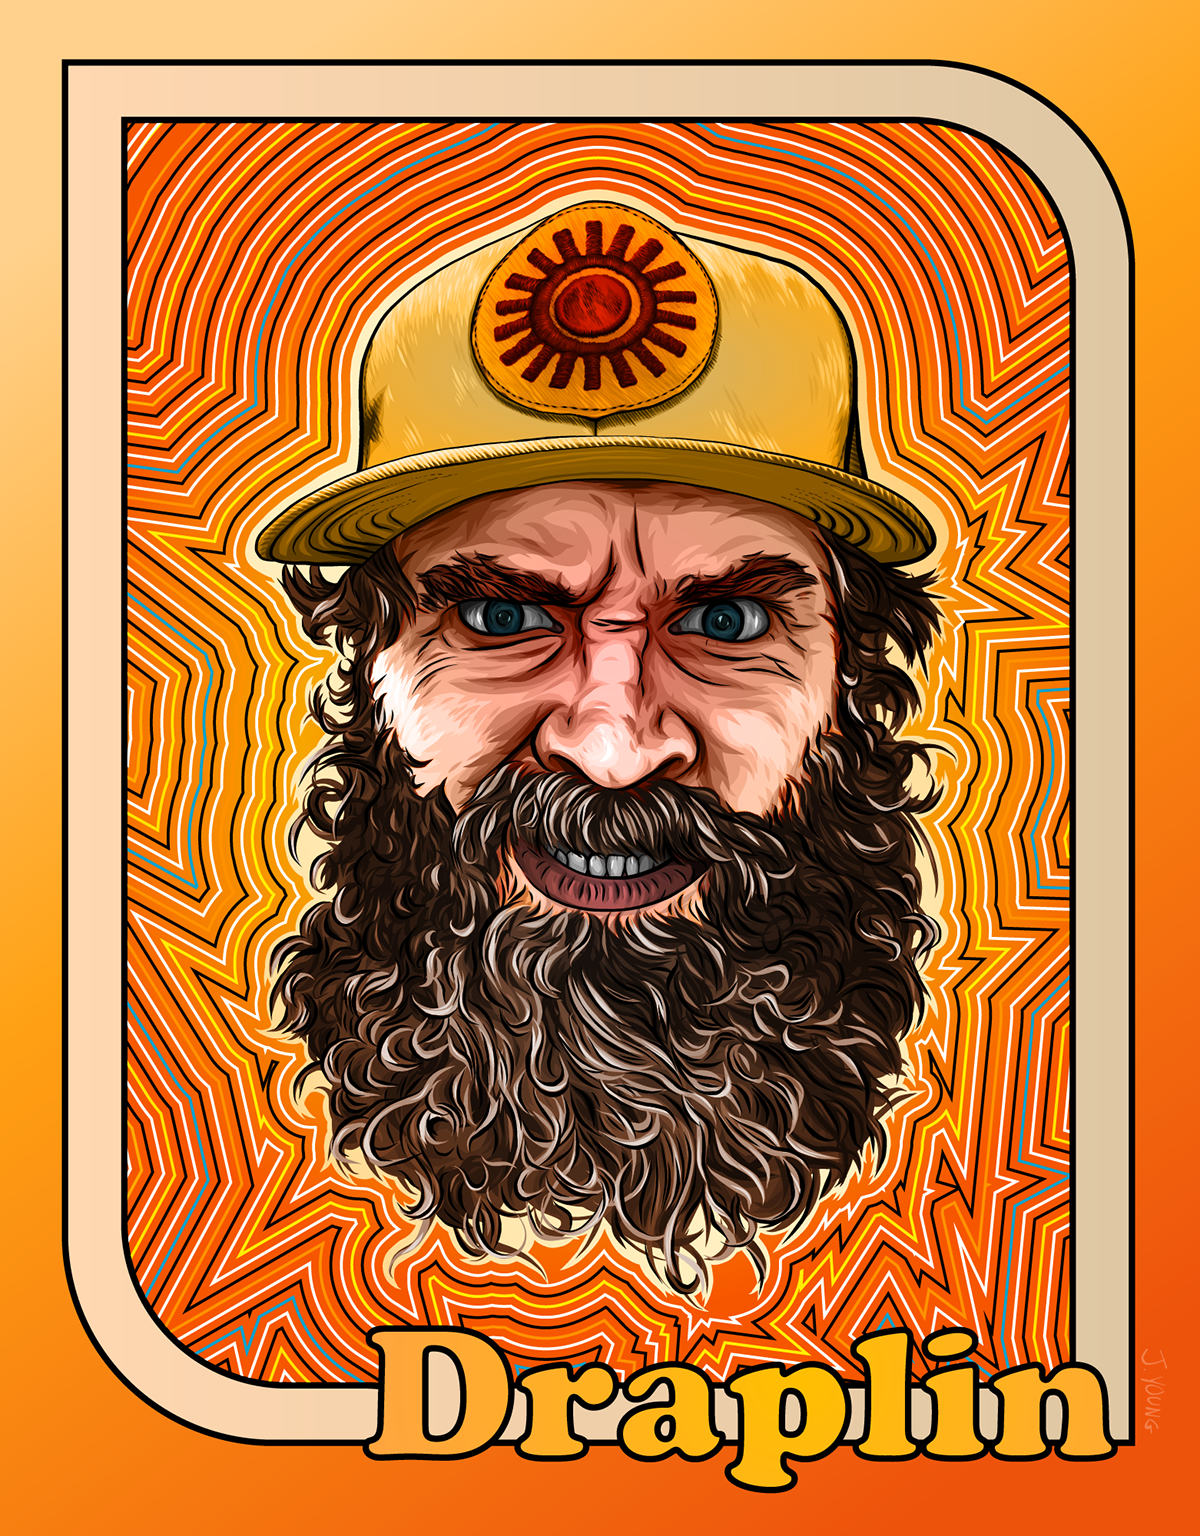 Aaron Draplin by Jessie Young